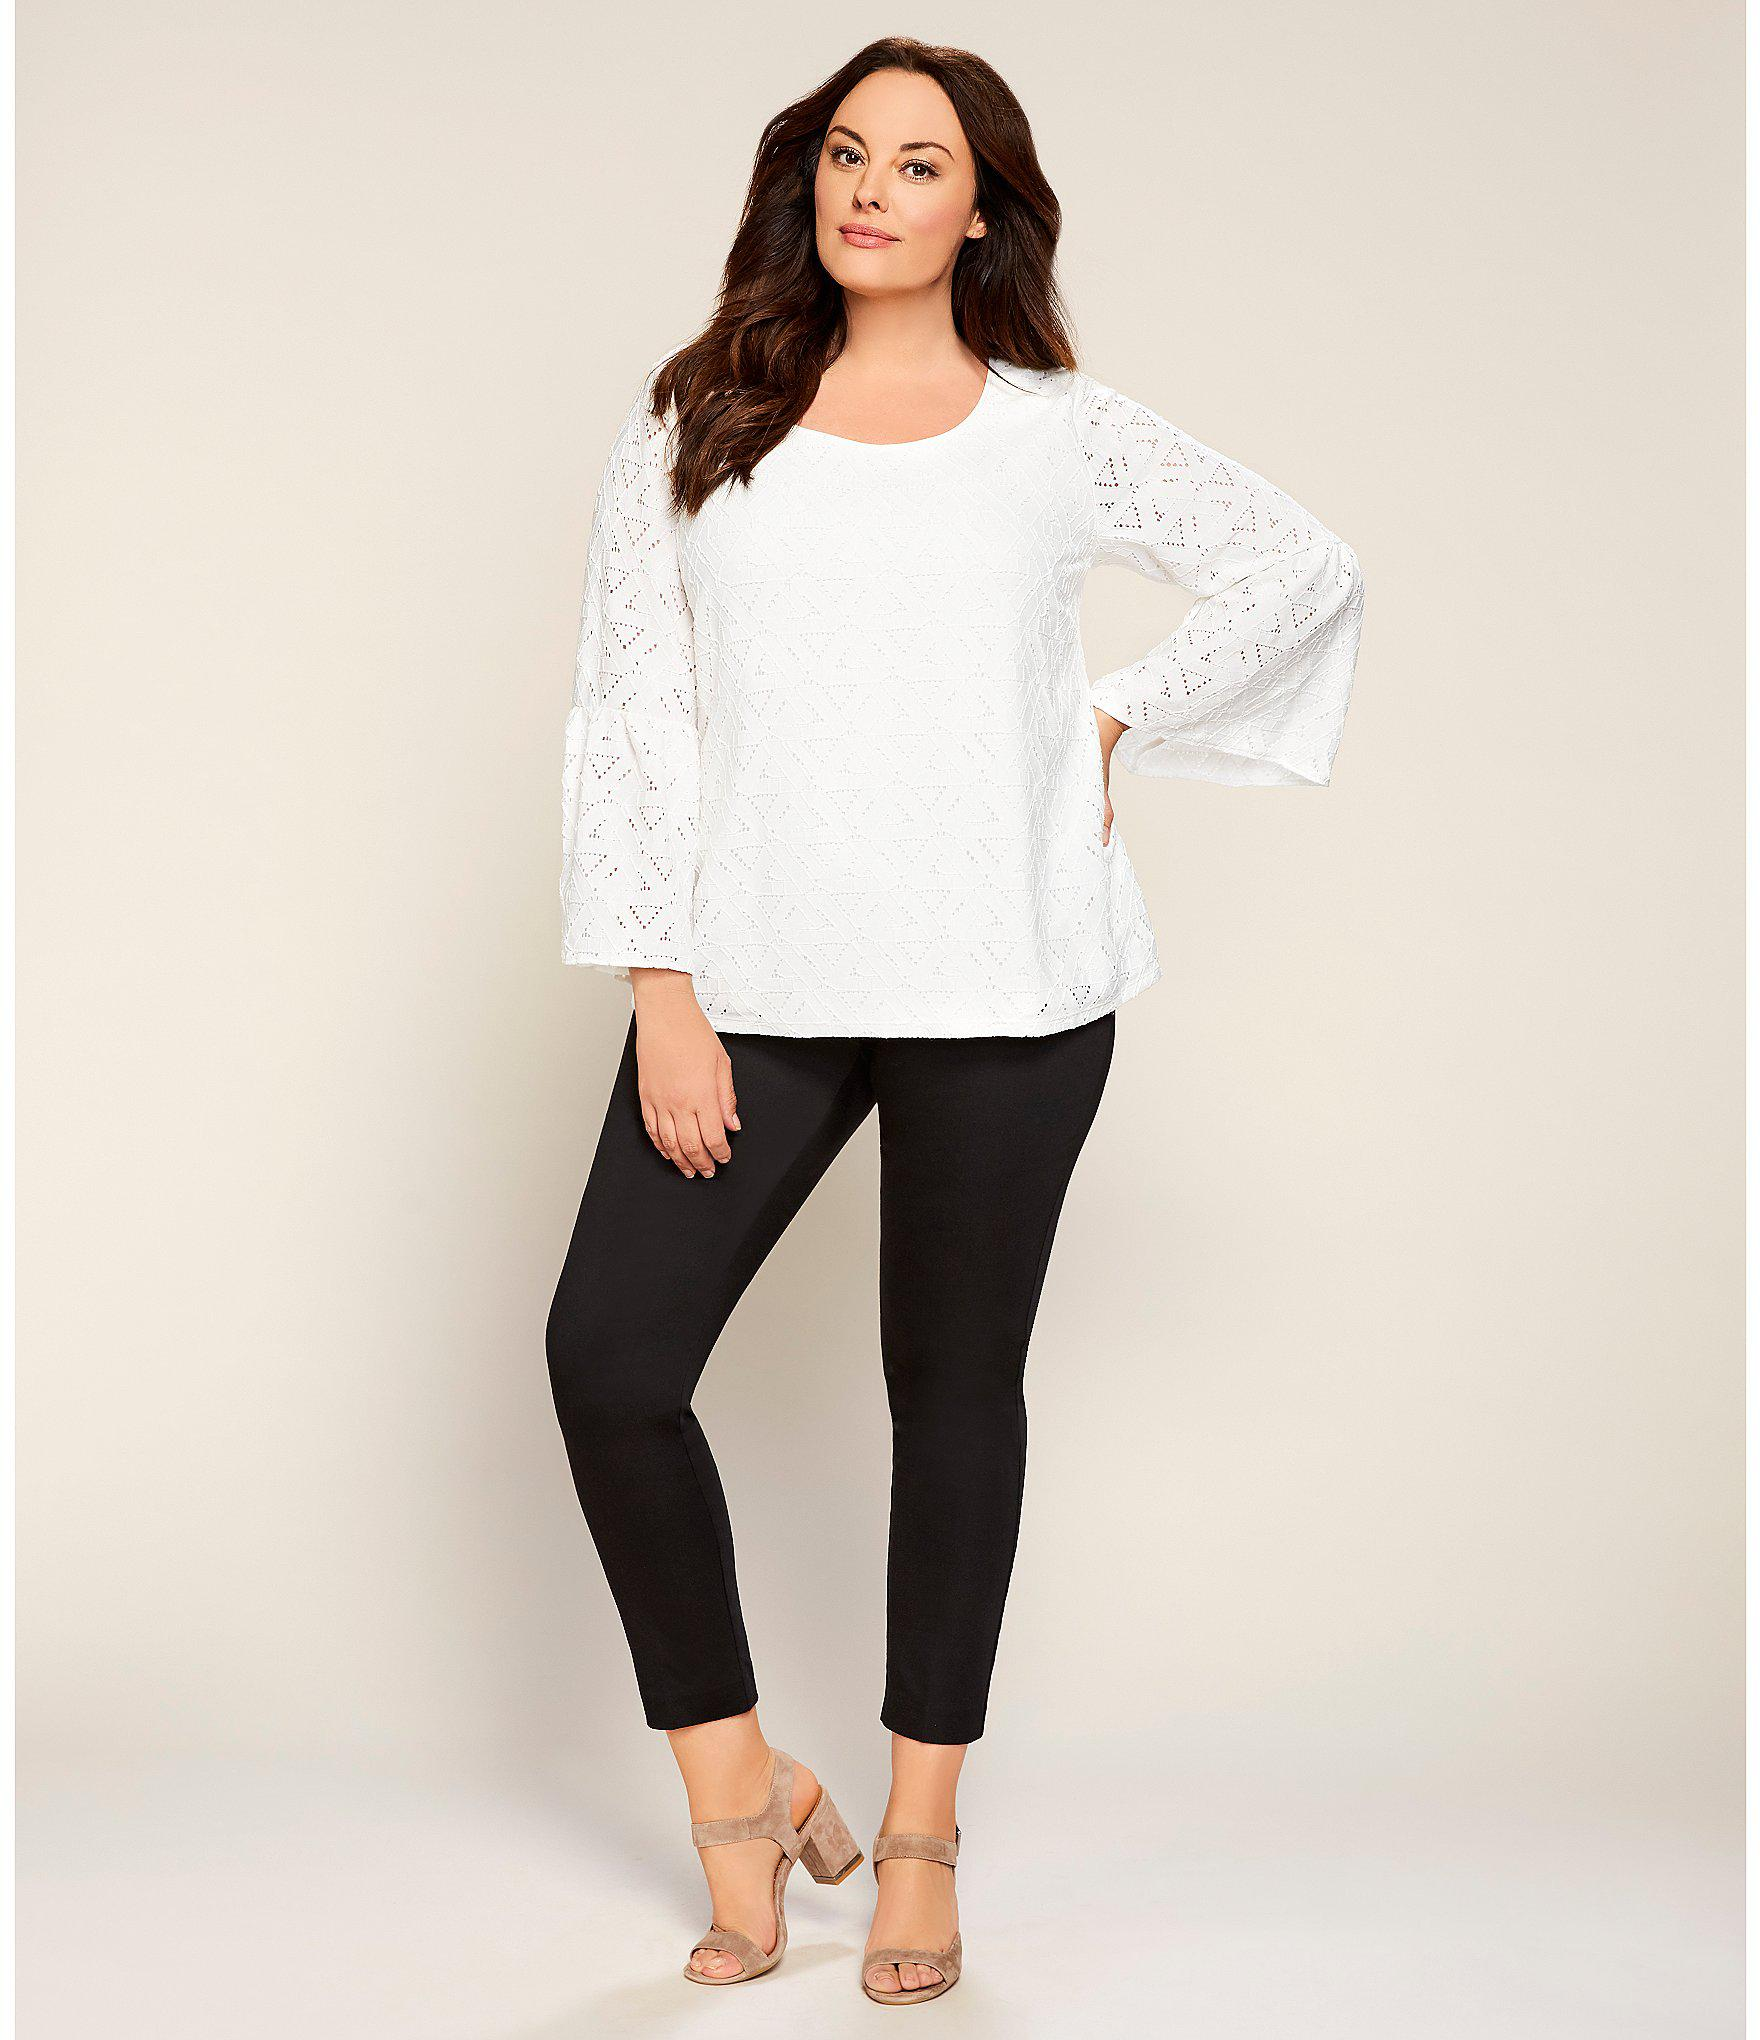 c5589f65668 Lyst - Calvin Klein Plus Size Triangle Eyelet Lace Bell Sleeve Top ...